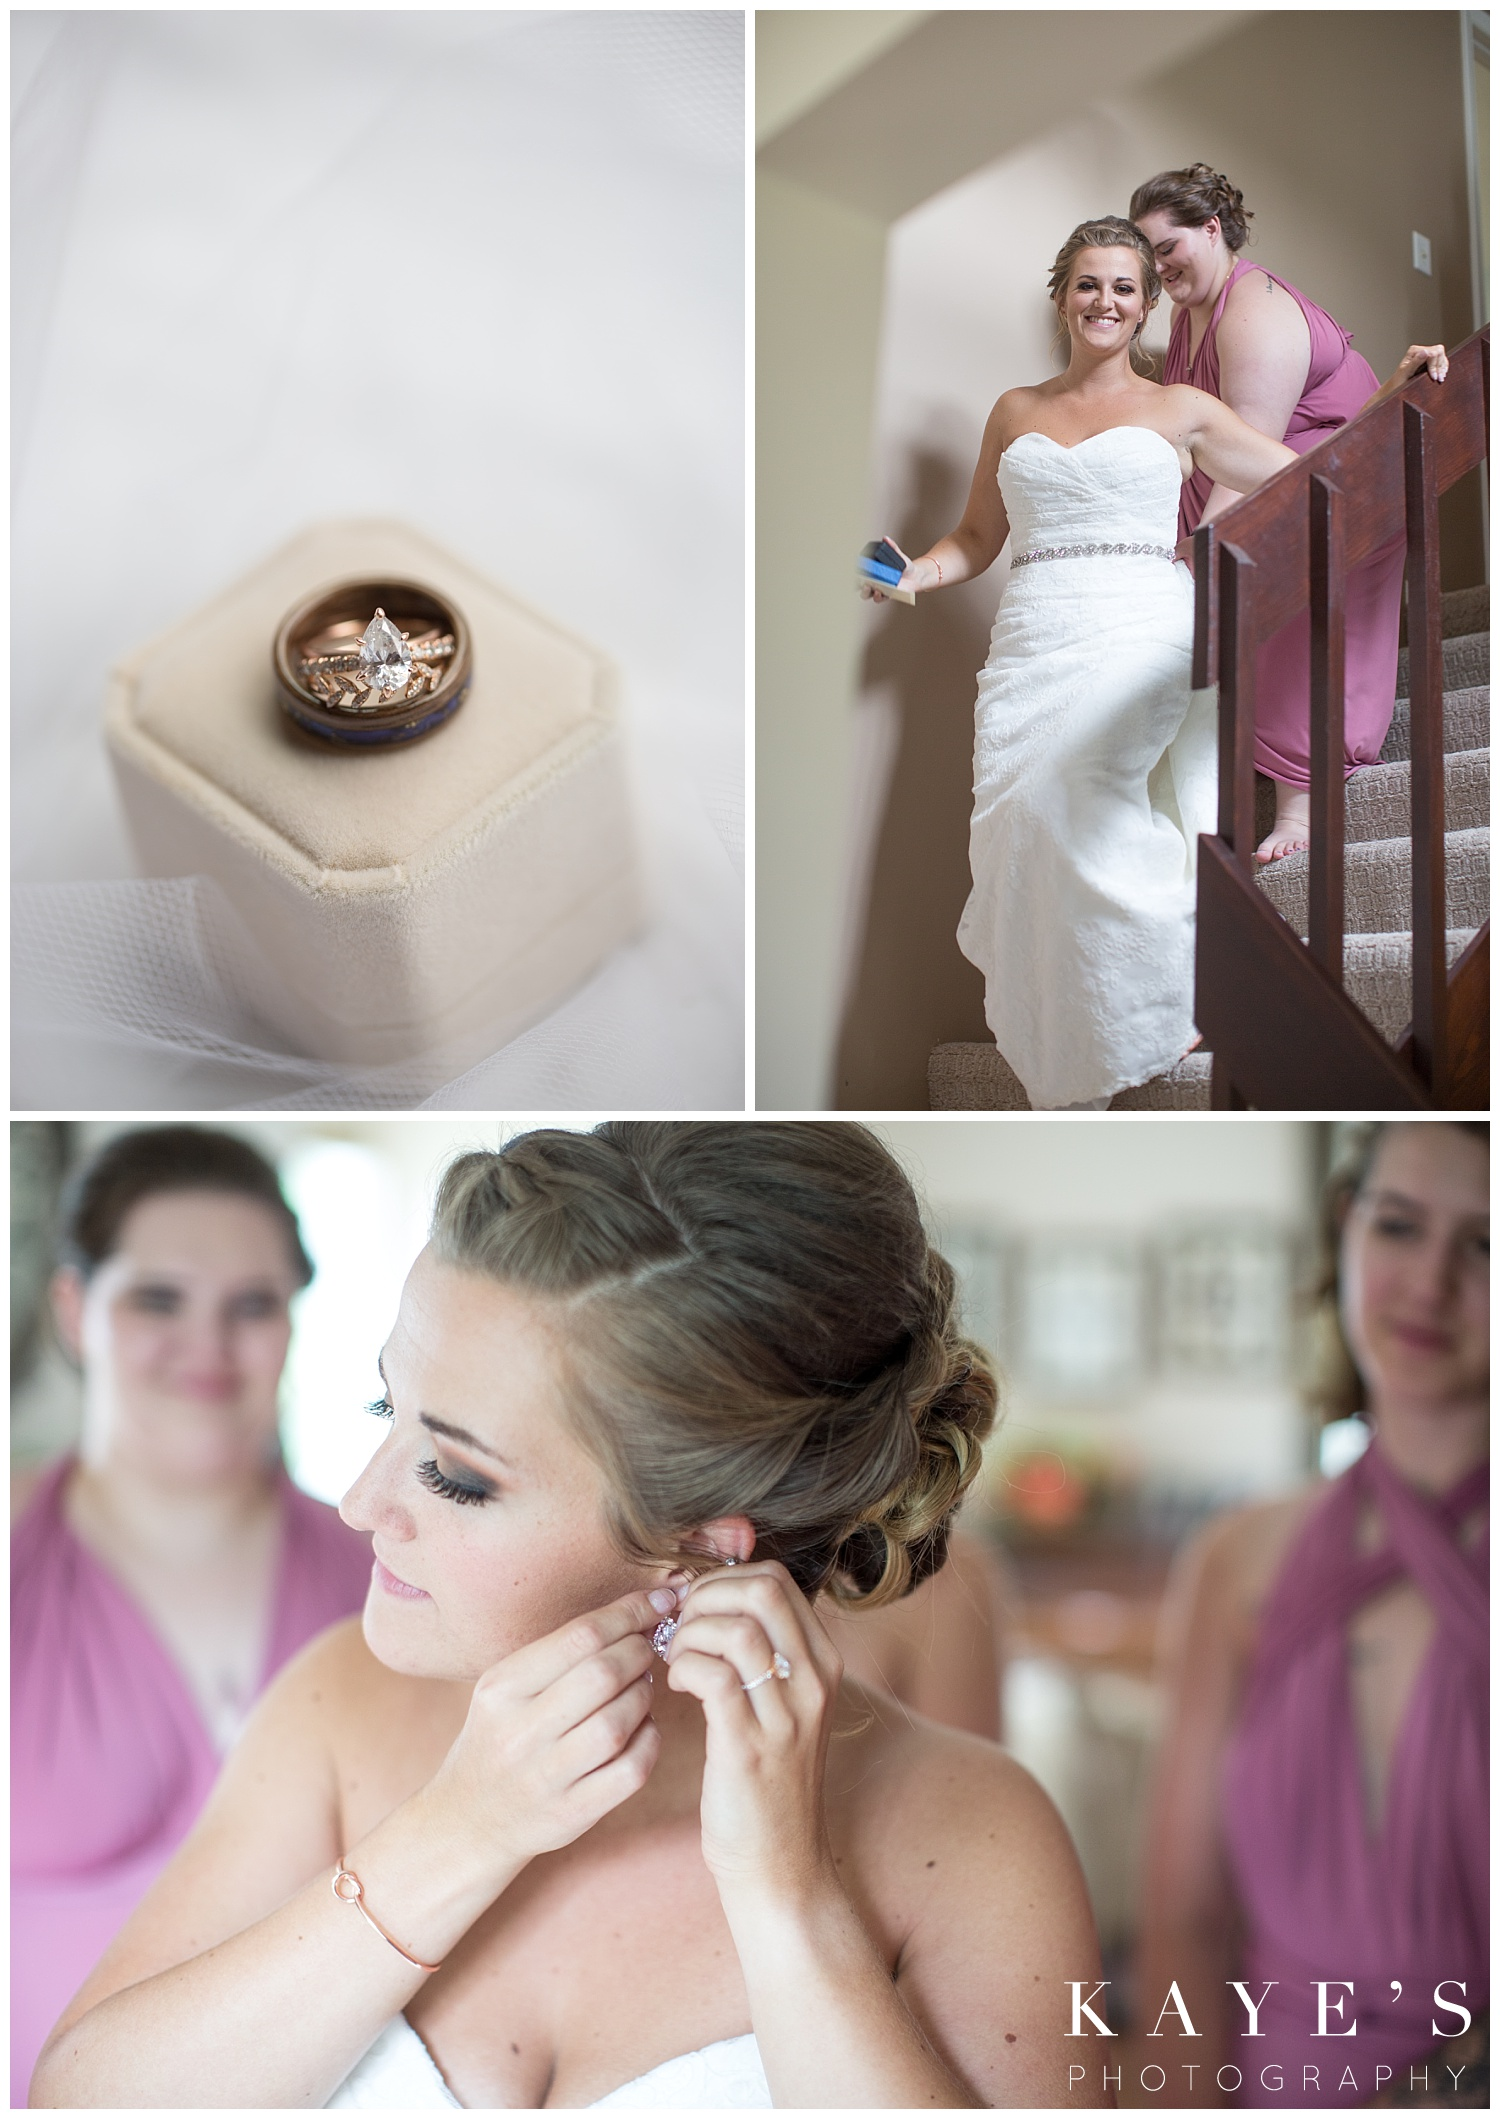 Bride getting ready to walk down the aisle at crossroads village in flint michigan!!